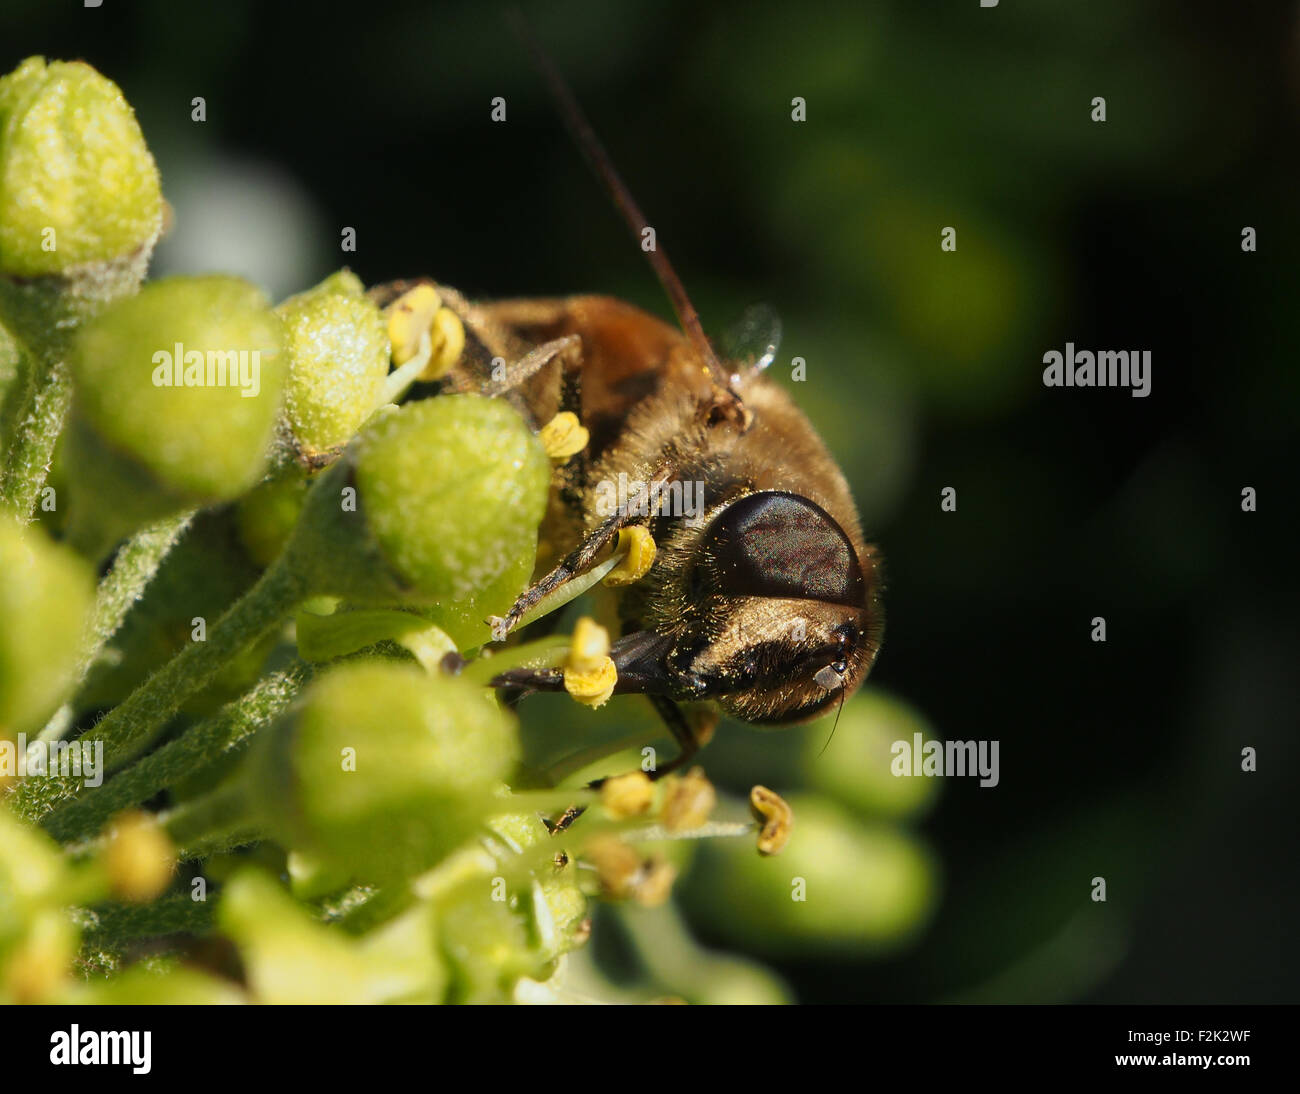 A honey bee nectaring on a plant in an English Garden Stock Photo